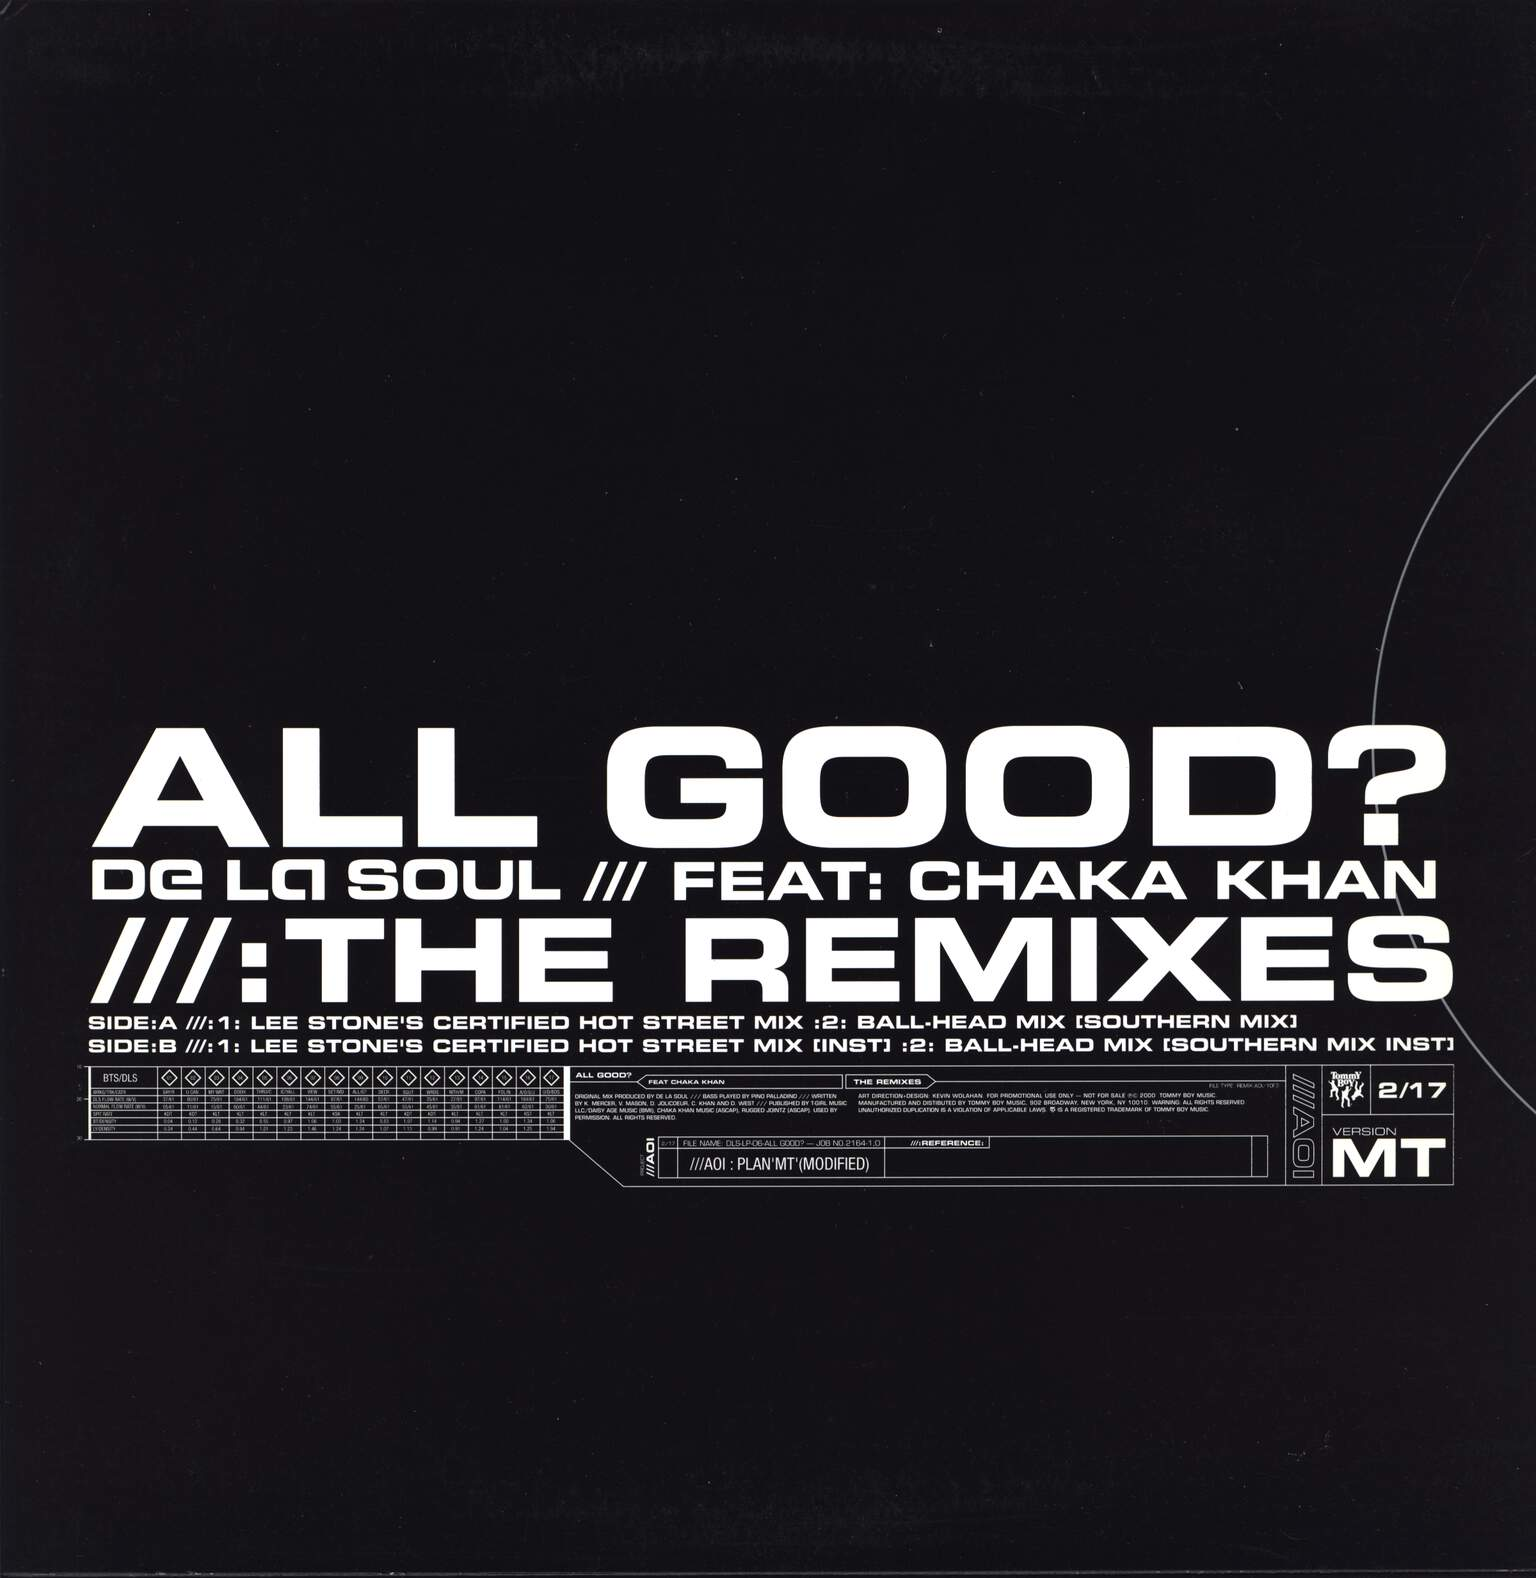 "De La Soul: All Good? (The Remixes), 12"" Maxi Single (Vinyl)"